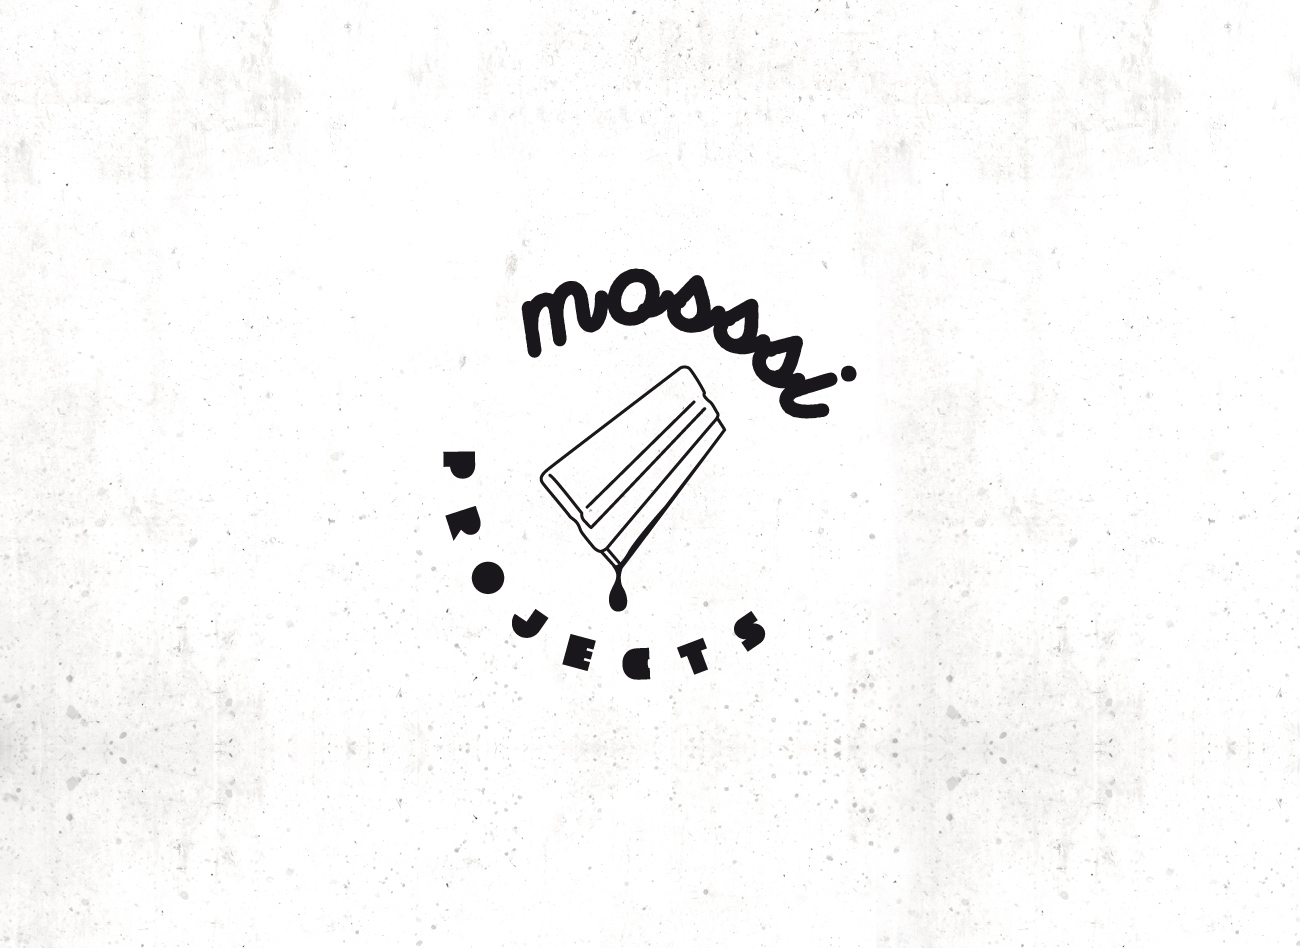 Logogestaltung / mosssi projects